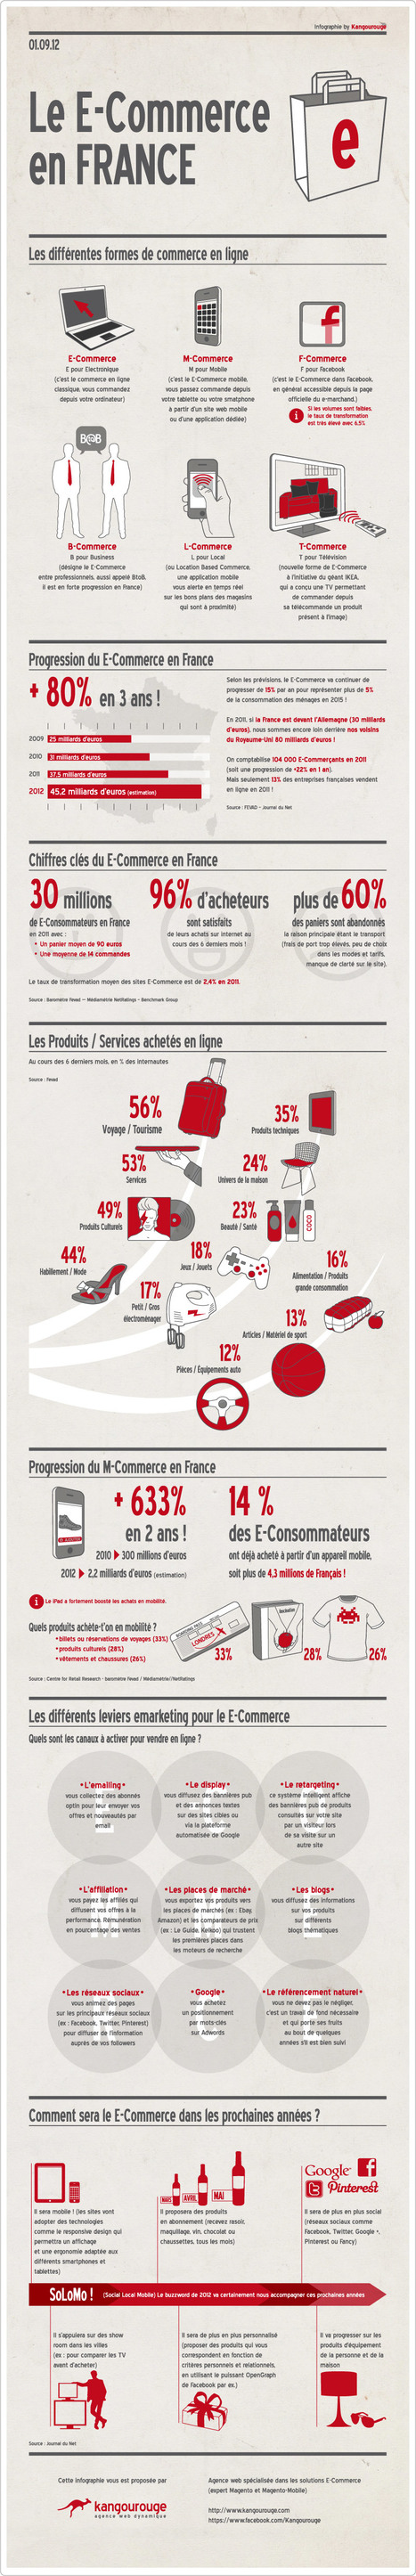 Infographie : le E-commerce en France en 7 points clés | Scenario 25 club | Scoop.it